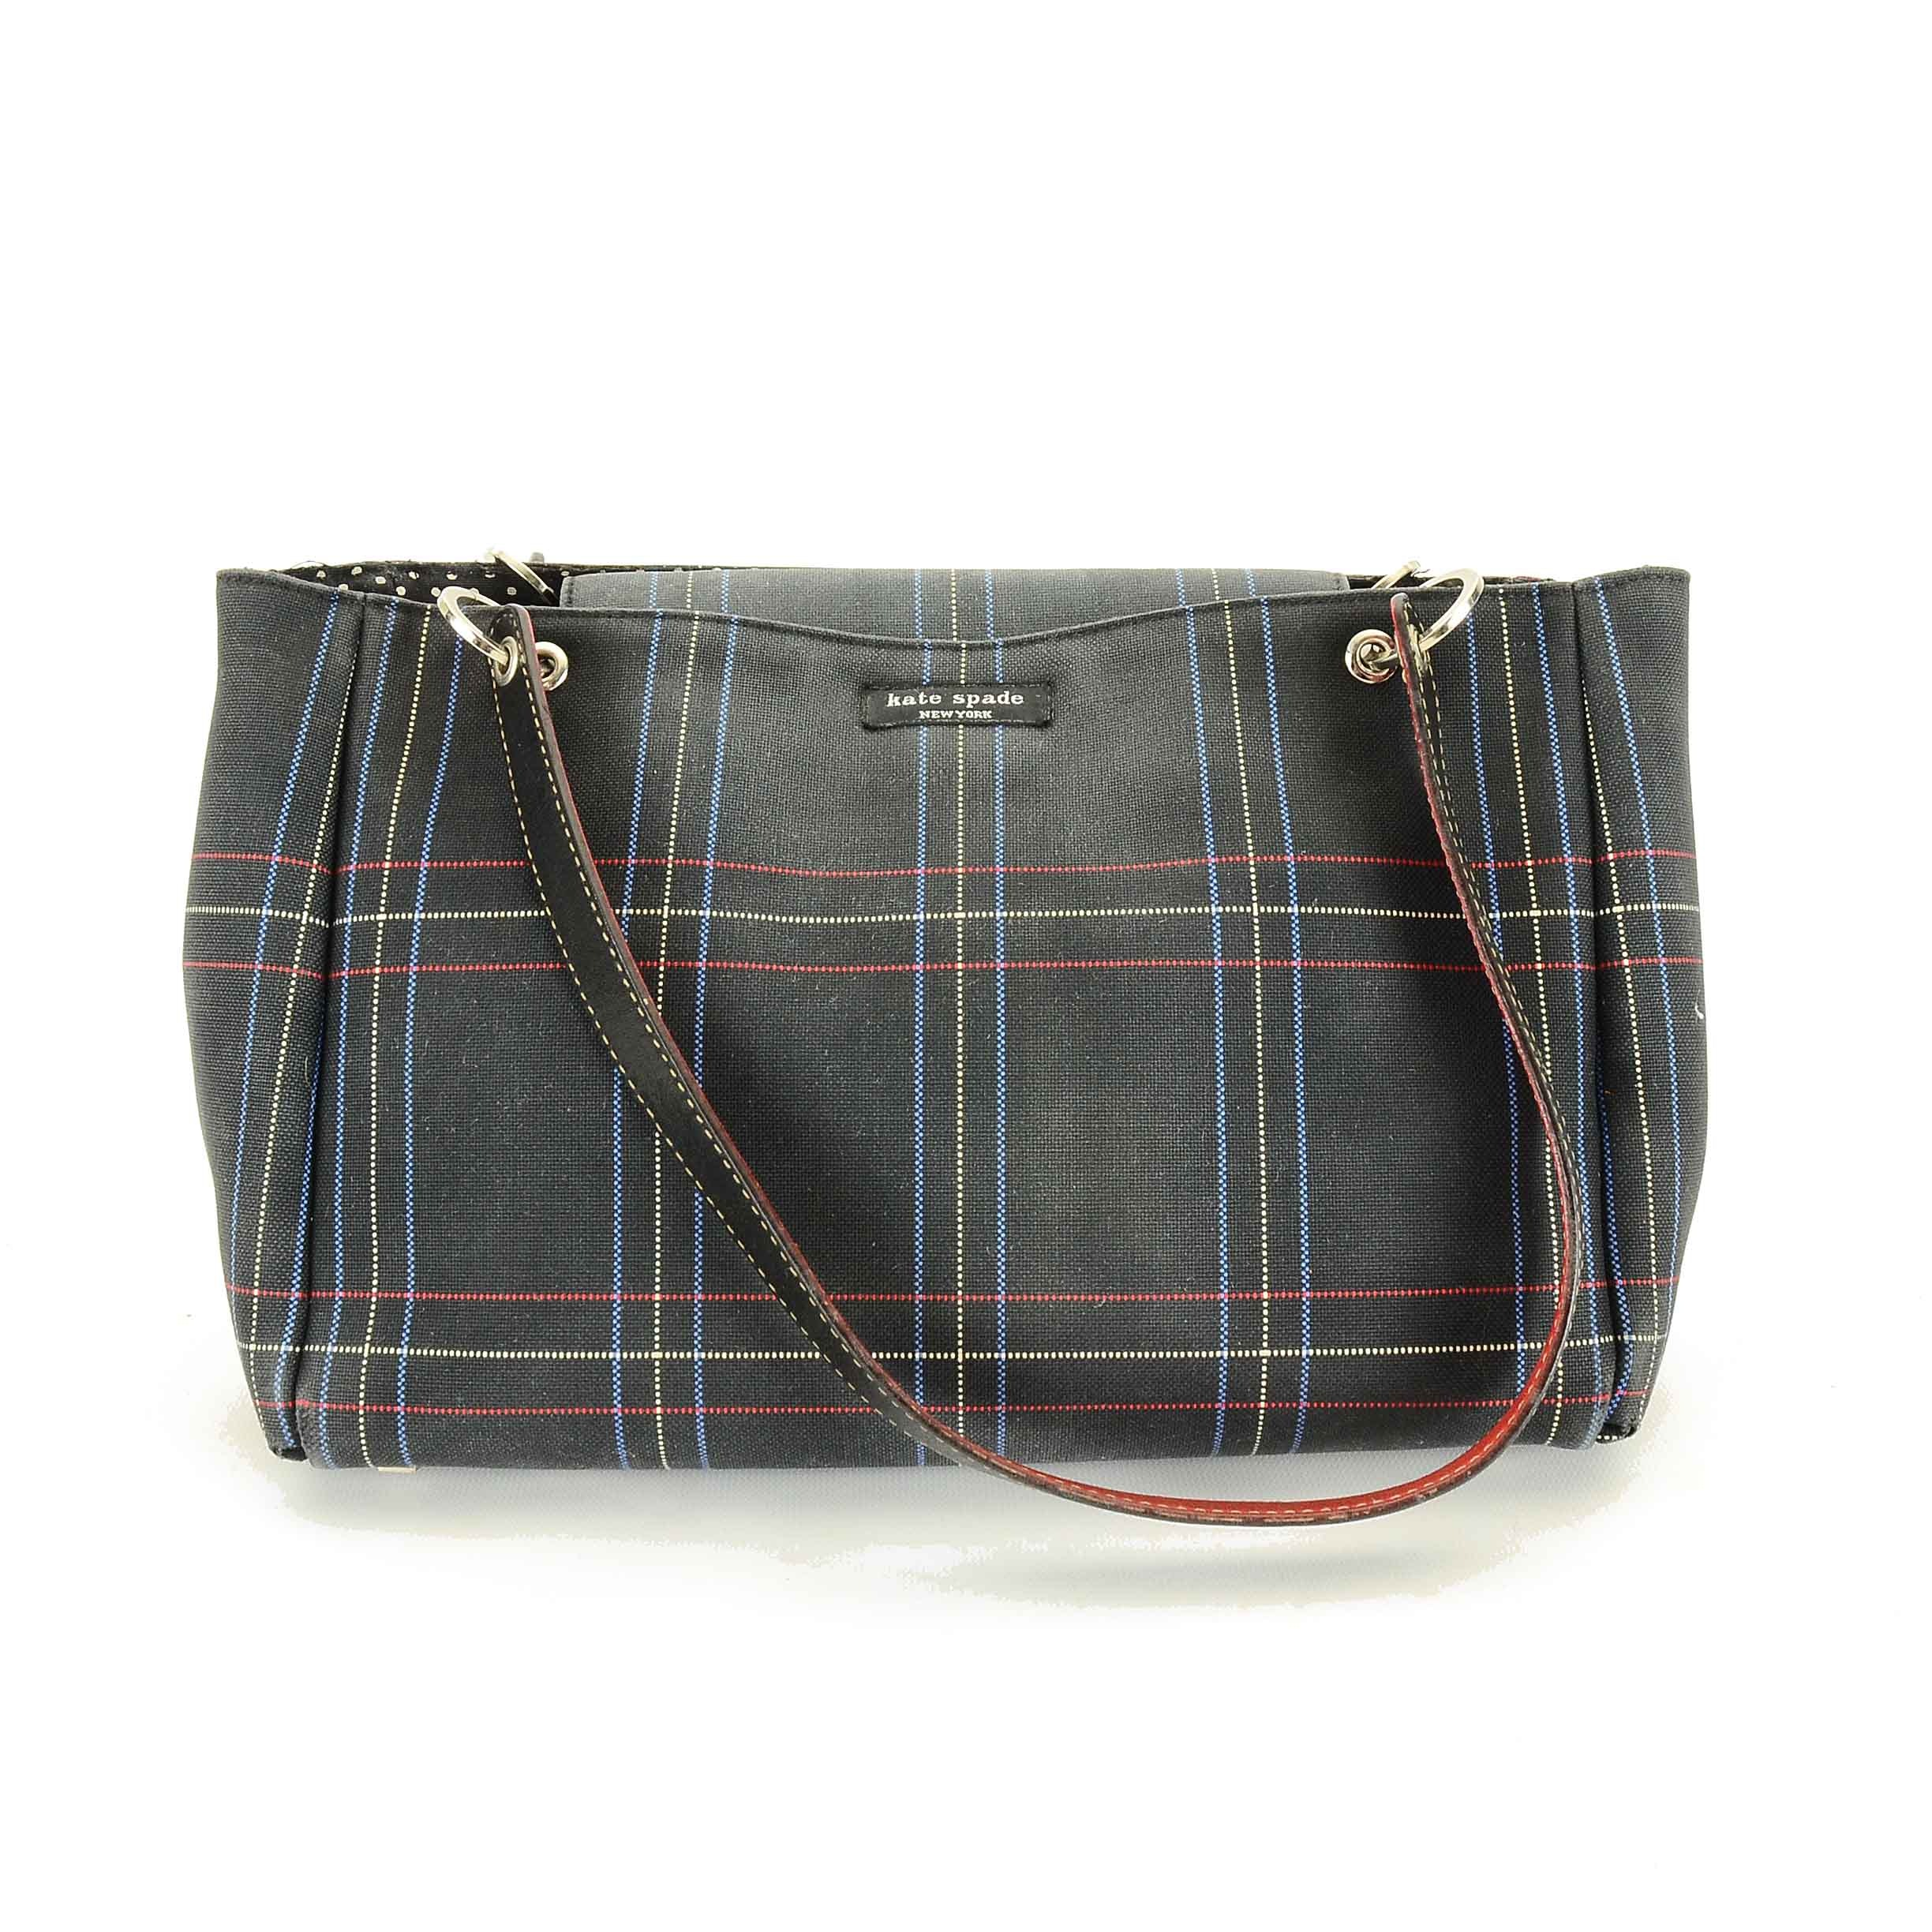 Circa 1990s Kate Spade New York Plaid Canvas and Leather Handbag